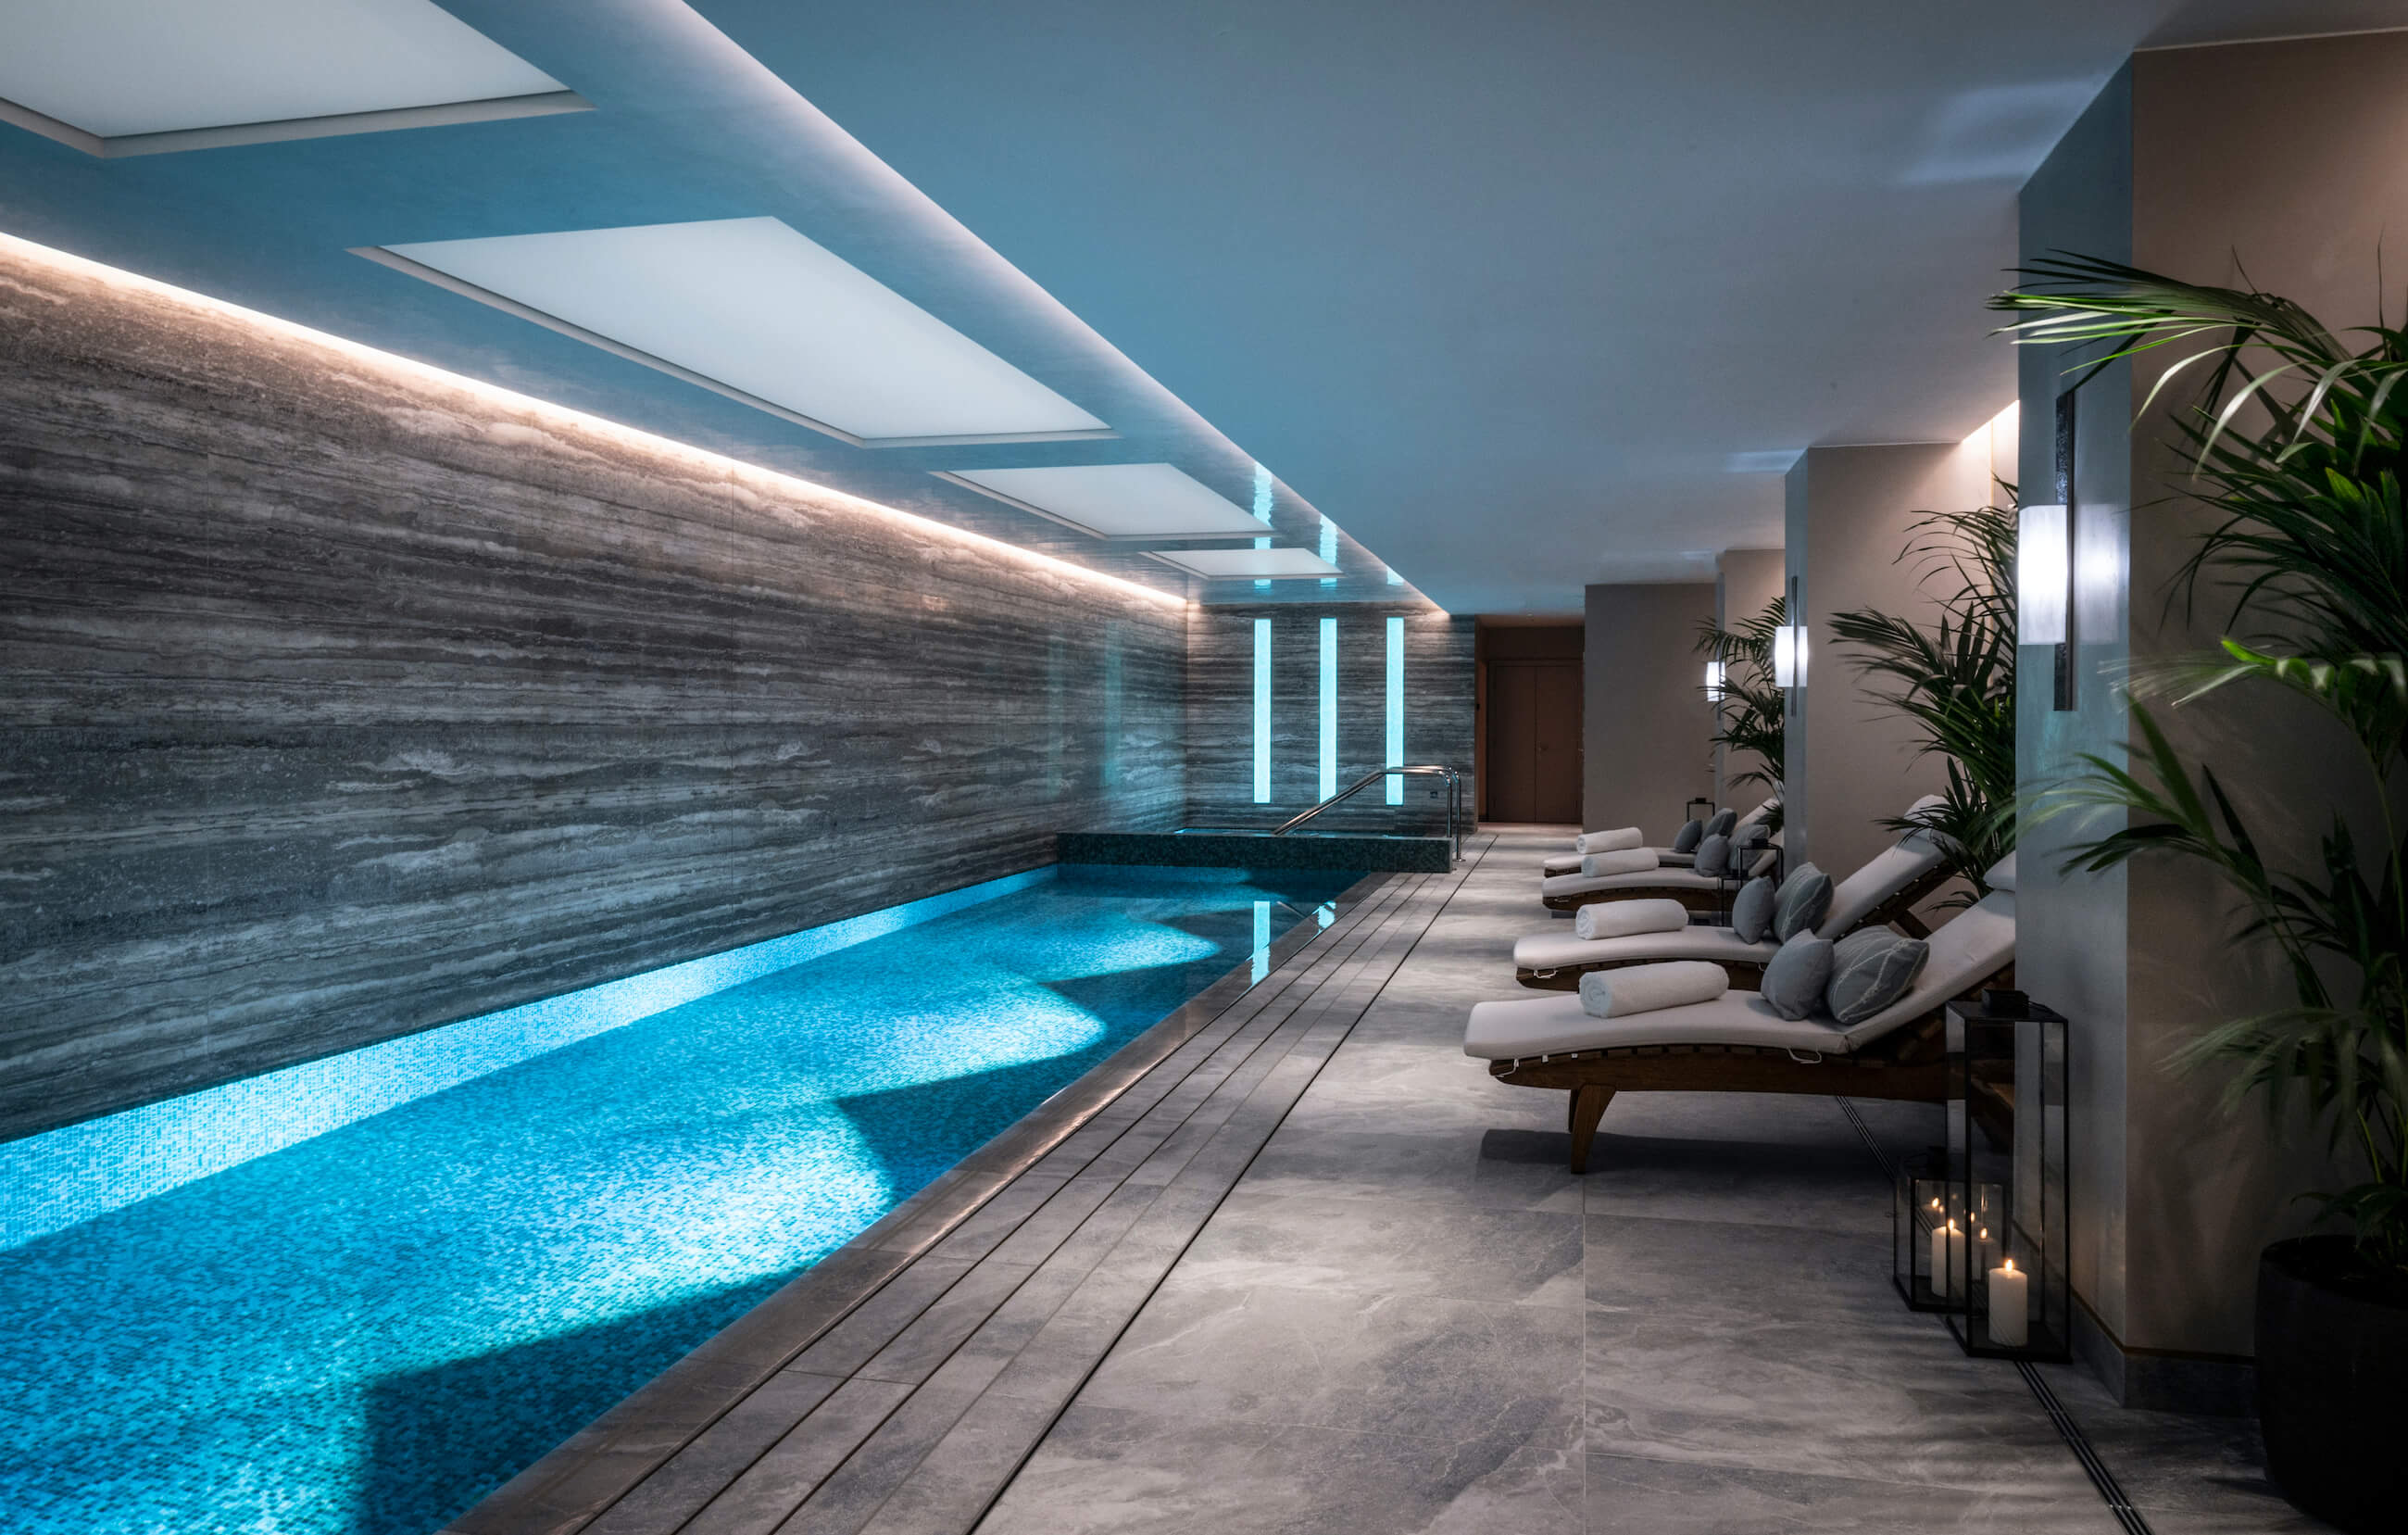 Indoor swimming pool with loungers